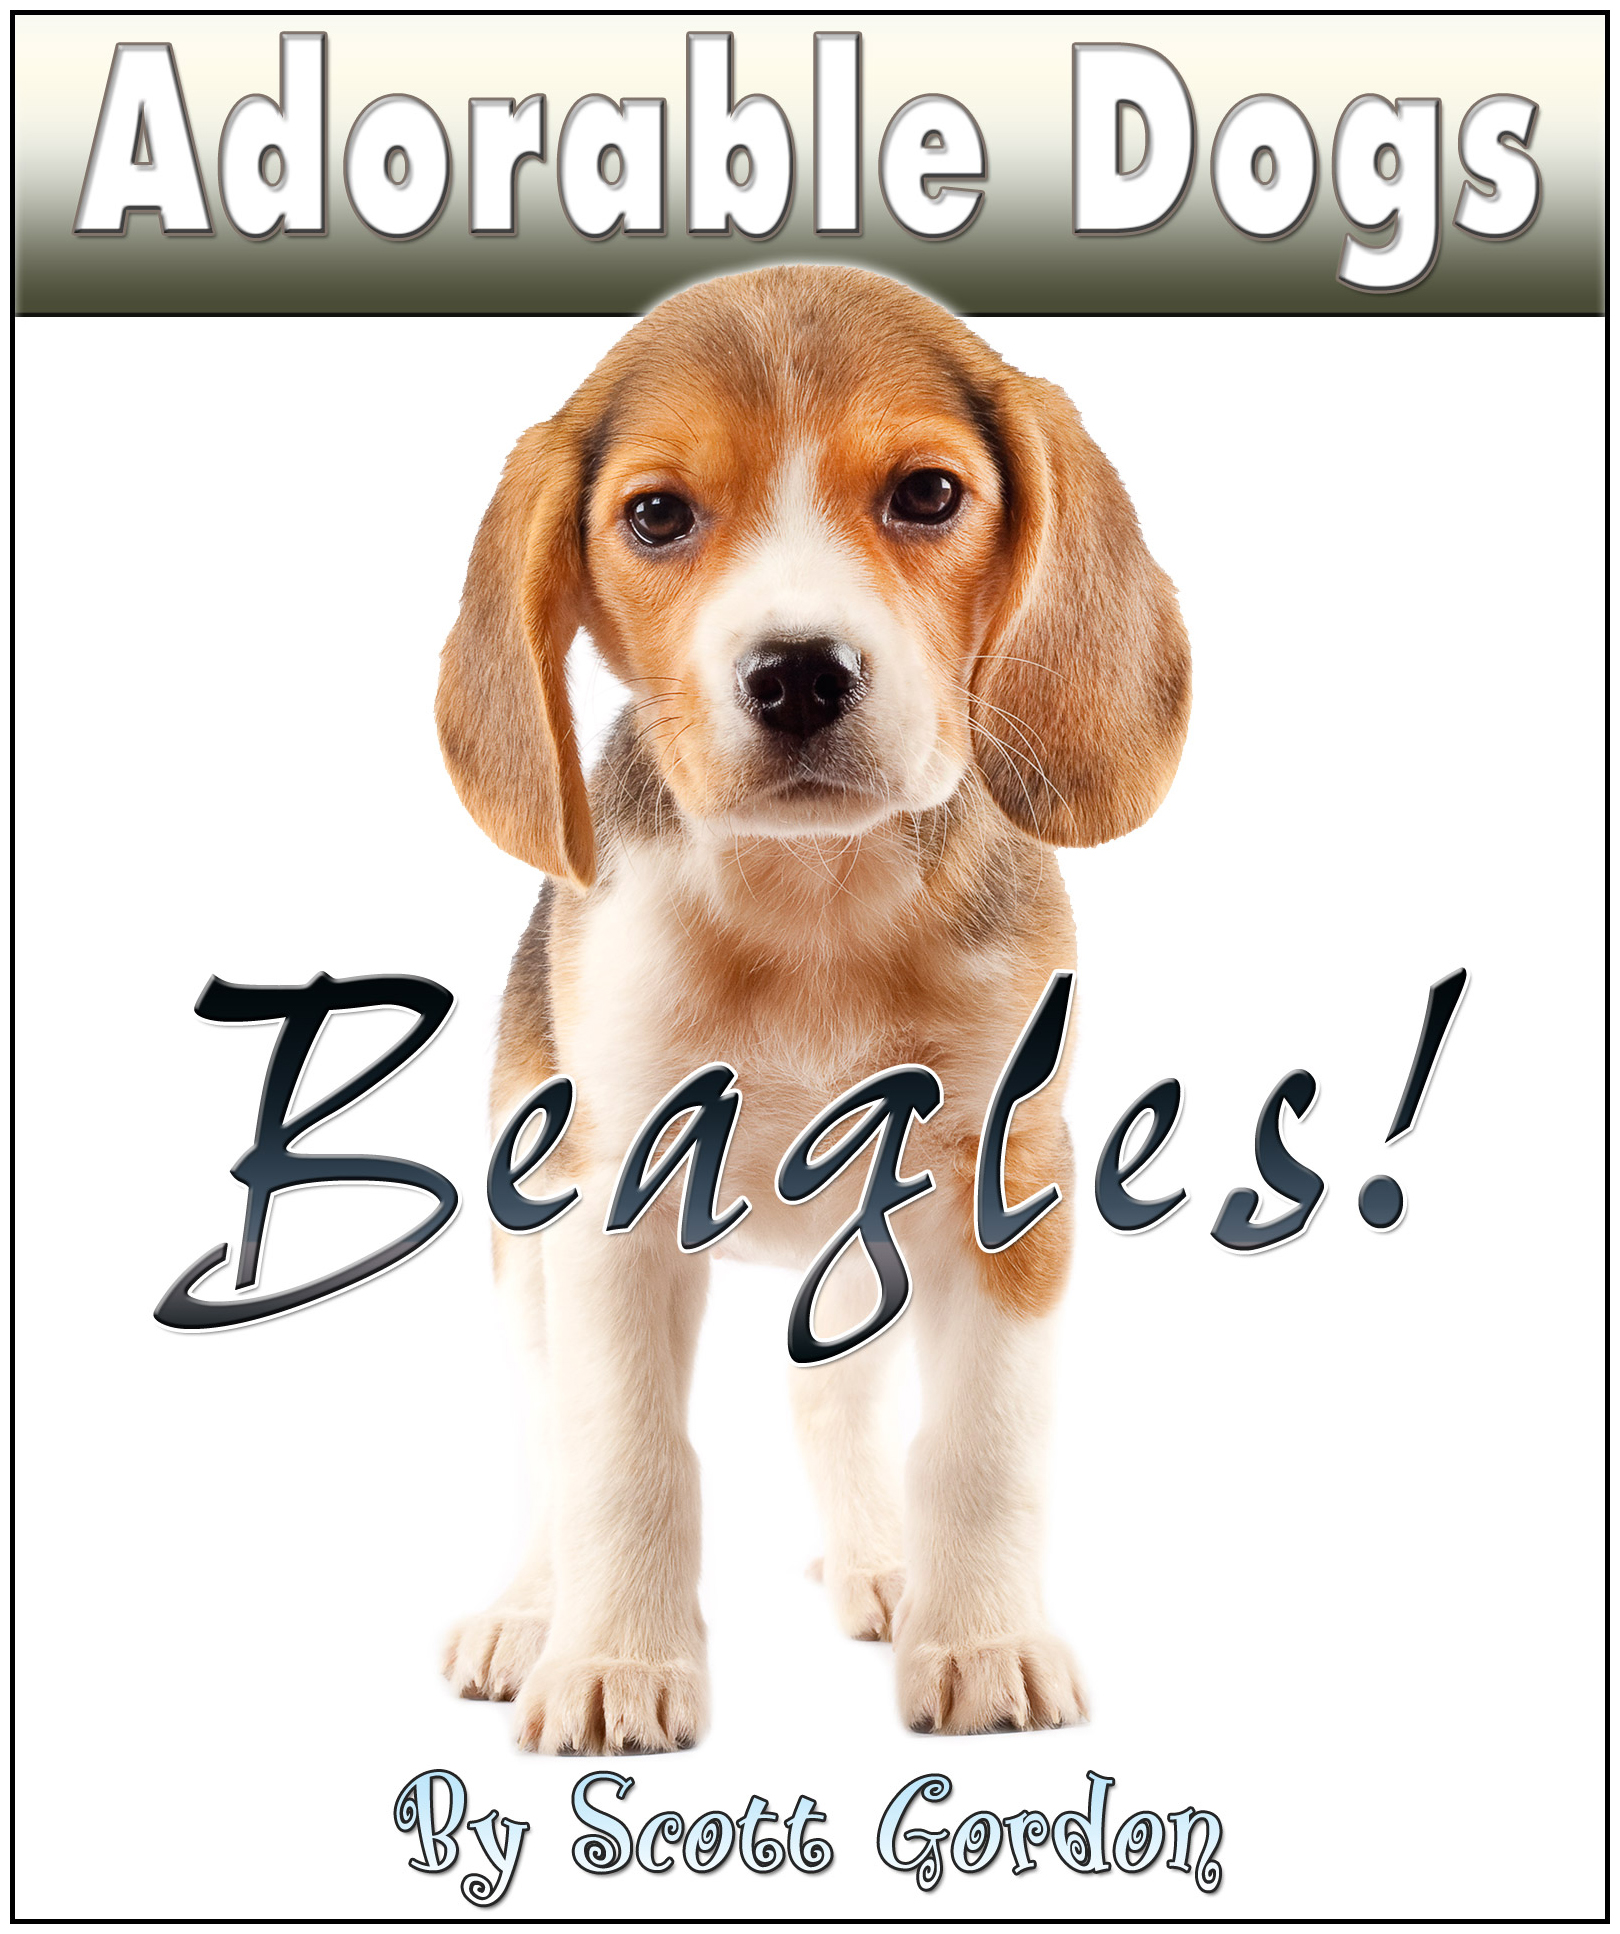 Adorable Dogs: Beagles!